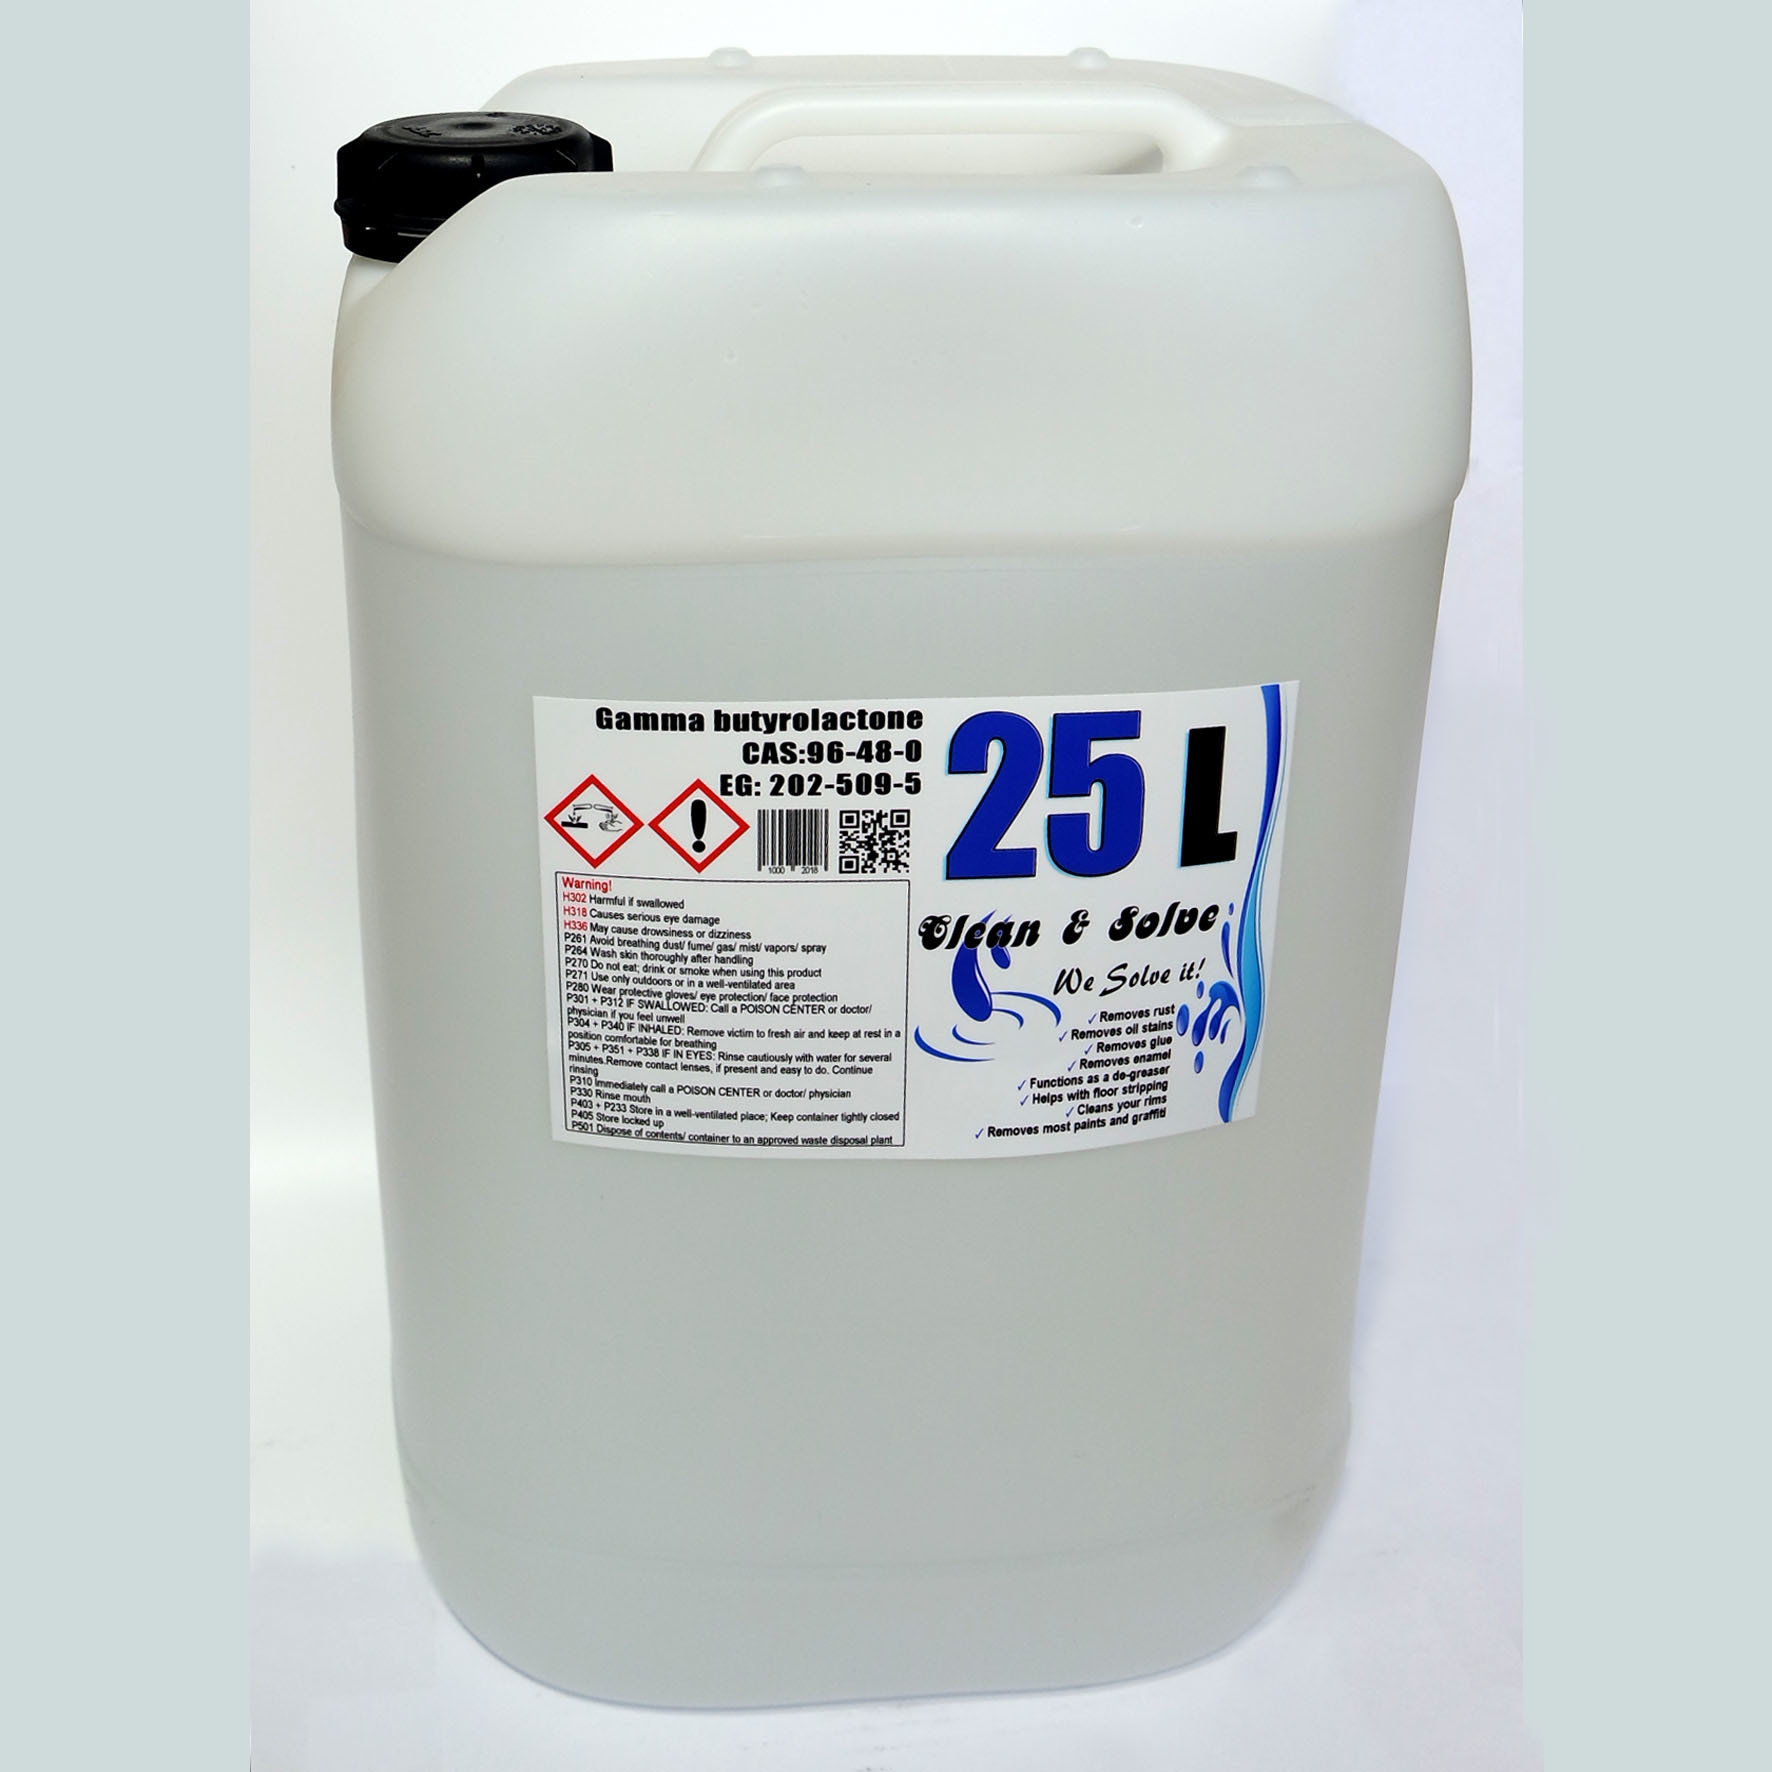 Industrial Cleaner 25.000 ml Technical Grade Canister +1x 500ml Super Grade FREE! 00025 HS Code 29322020